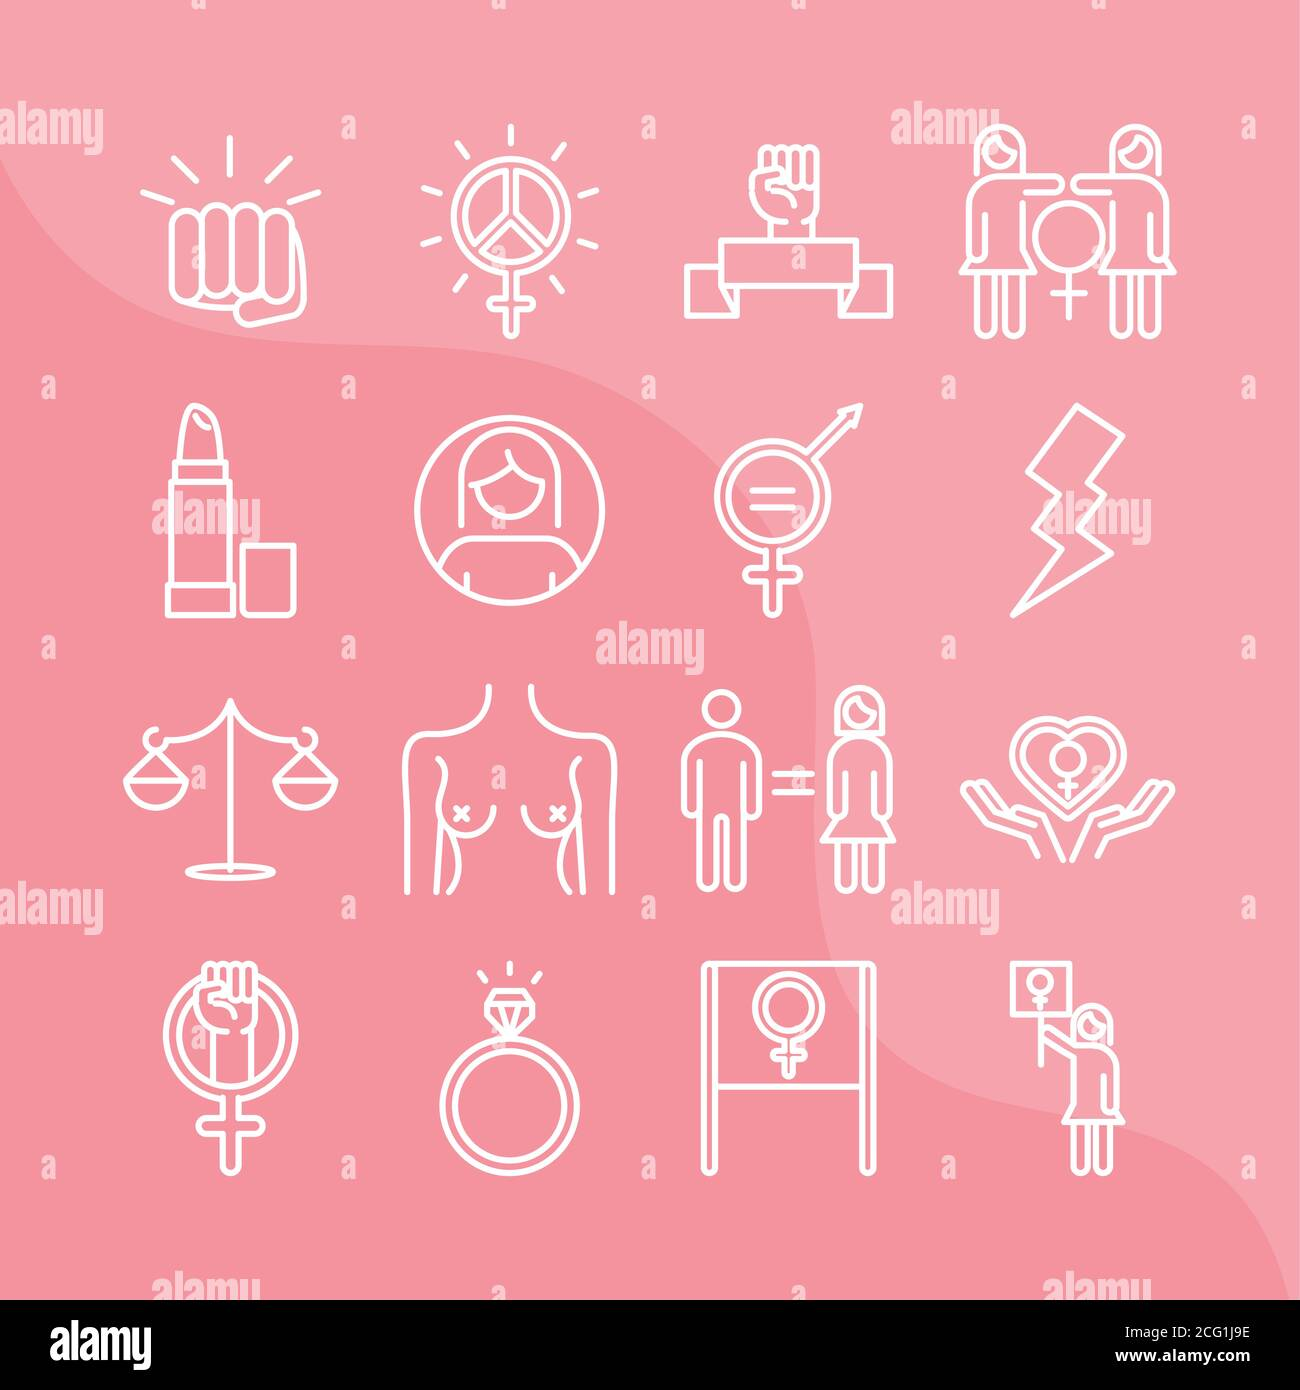 feminism movement icon, female rights pictogram linear icons set vector illustration Stock Vector